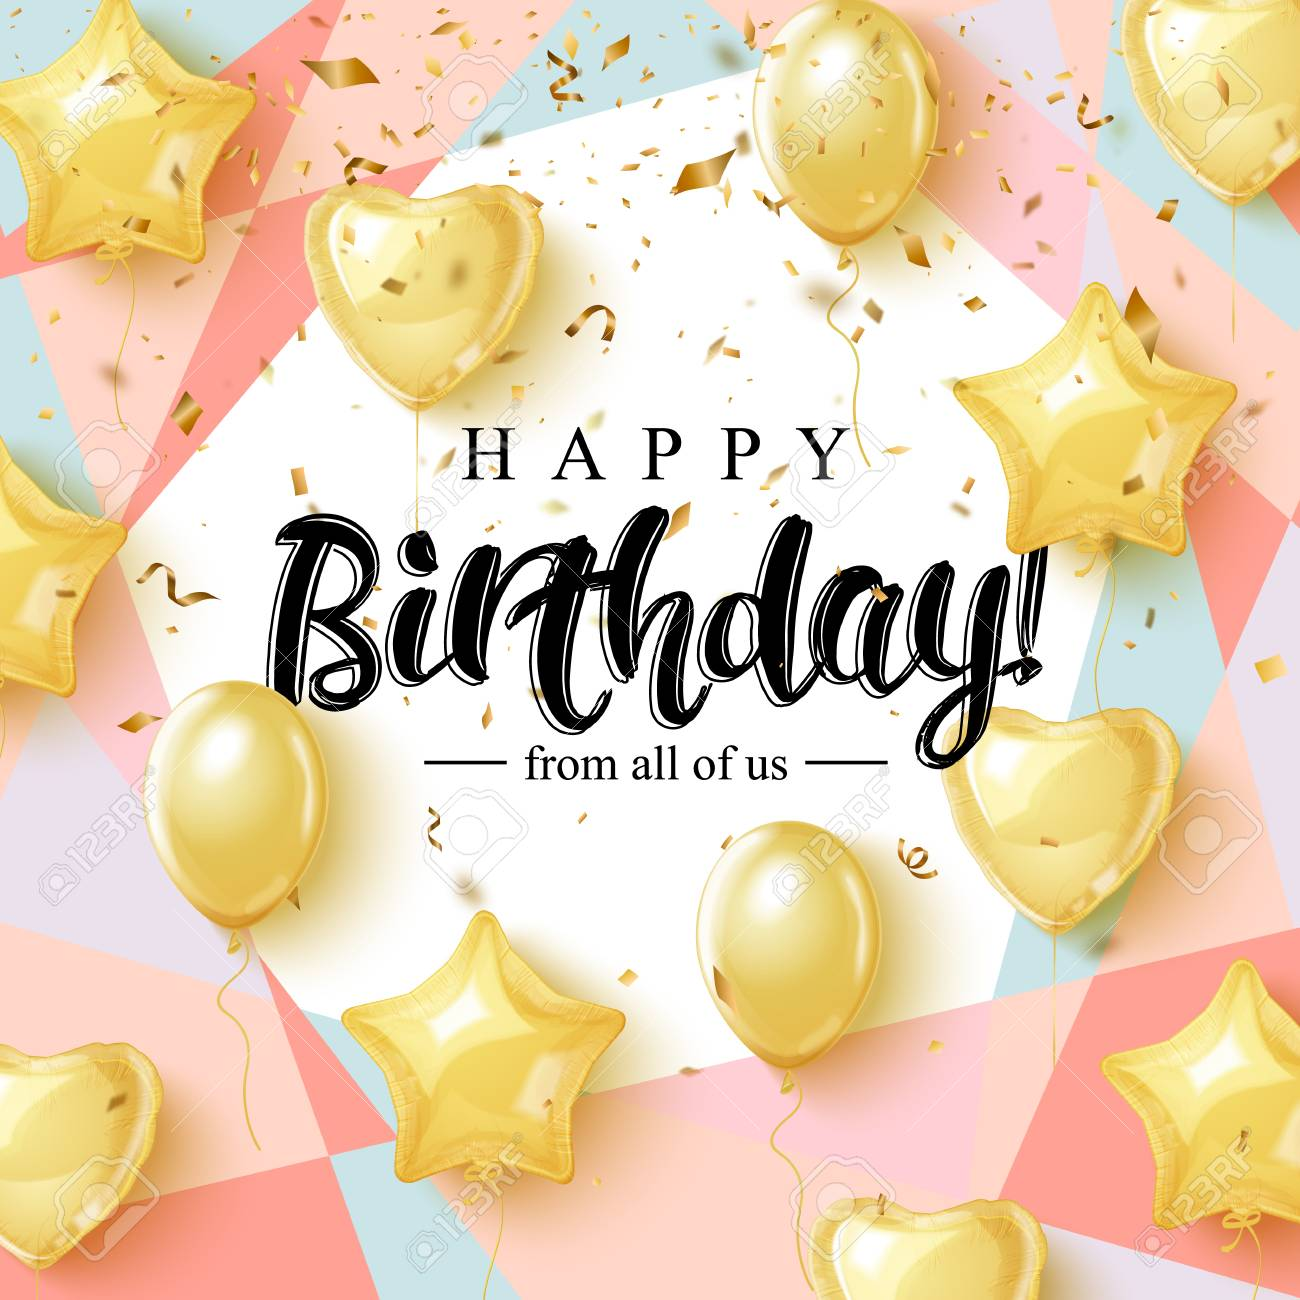 Happy Birthday celebration typography design for greeting card, poster or banner with realistic golden balloons and falling confetti. - 96055653